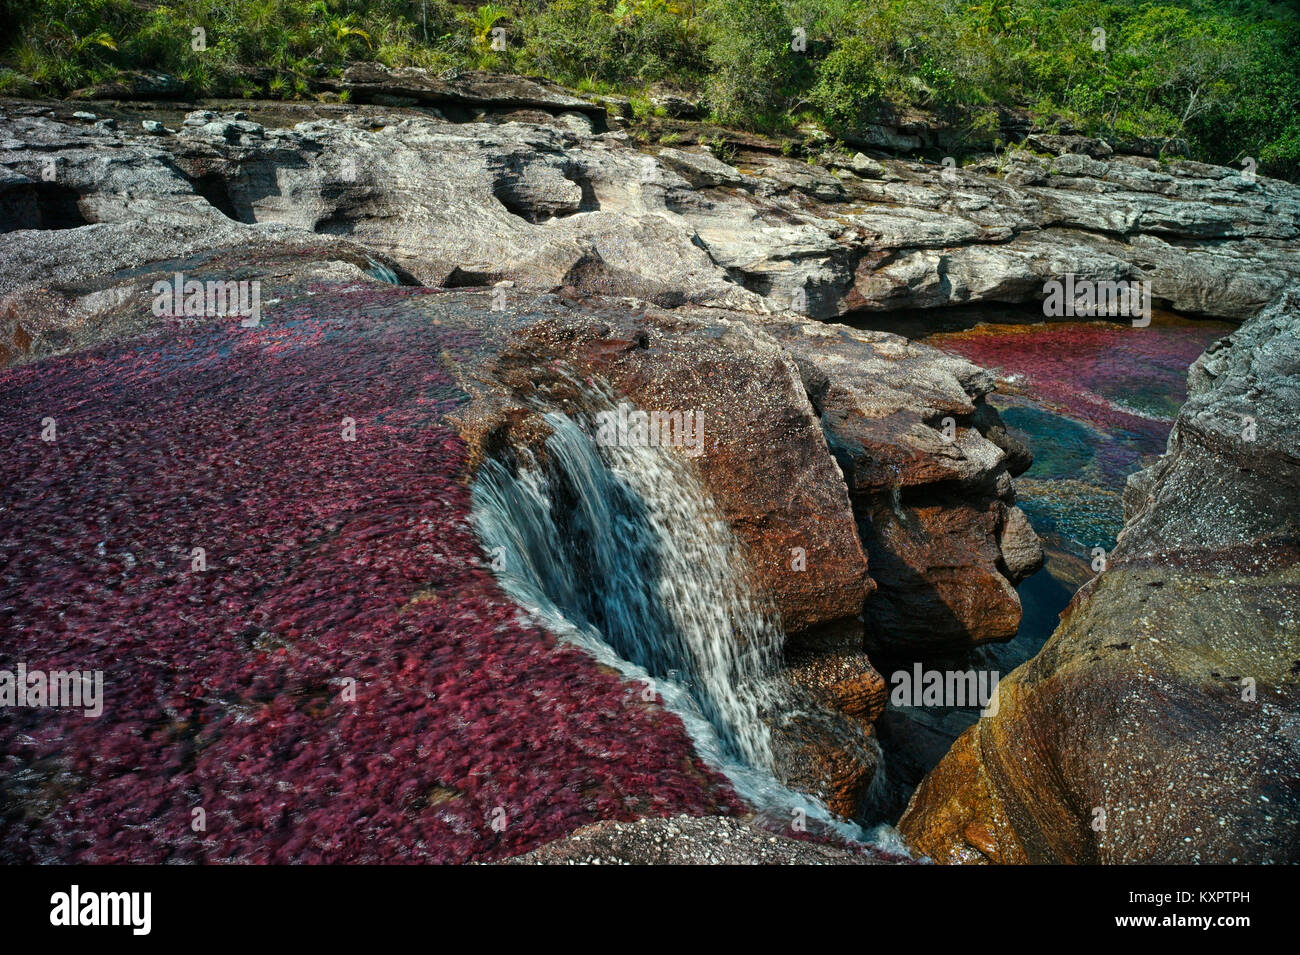 Cano Cristales river, commonly called the River of Five Colors or the Liquid Rainbow. Colorful endemic freshwater - Stock Image